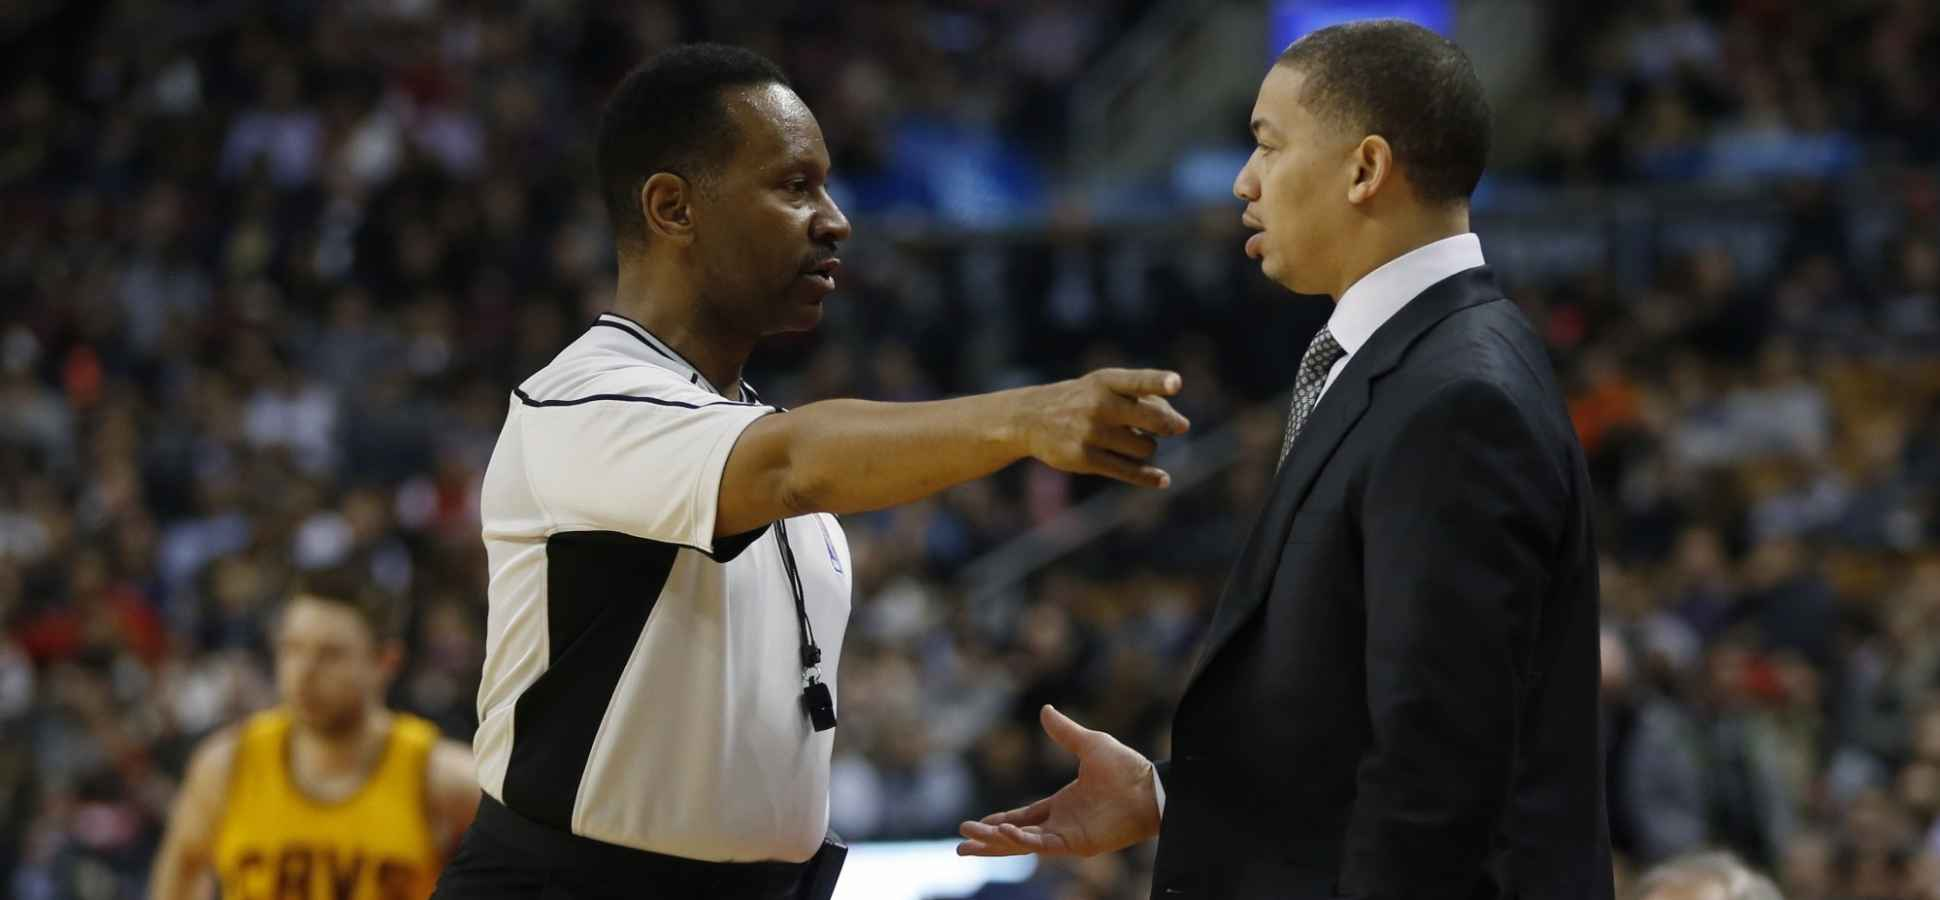 This NBA Coach Spoke Just 5 Words and Showed What Leaders Are Really Made Of